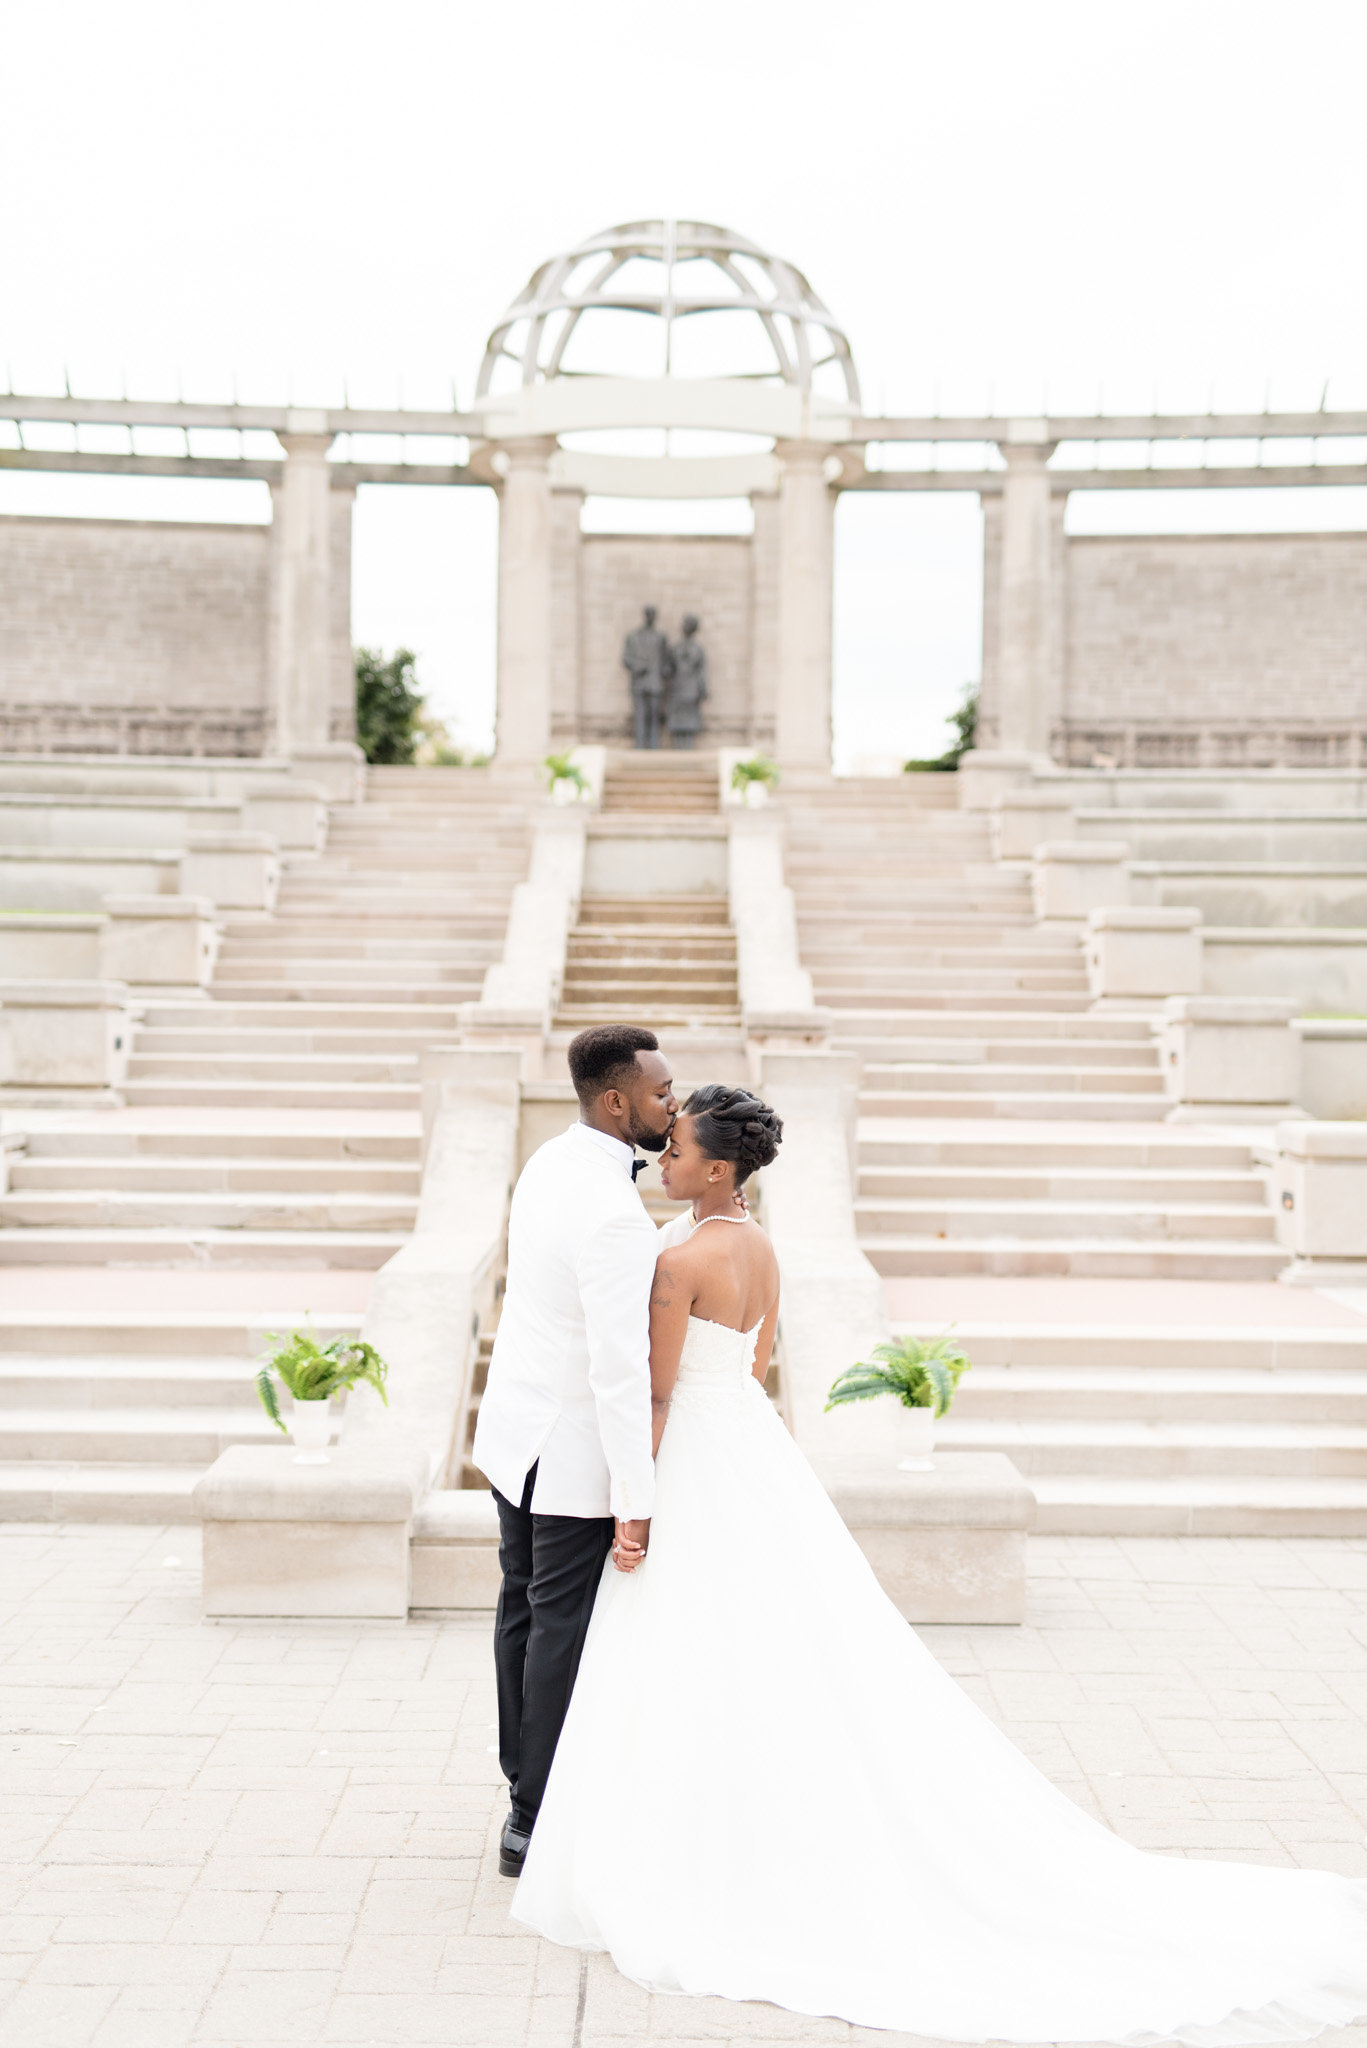 Coxhall-Gardens-Wedding-Indianapolis-Ritz-Charles 0015